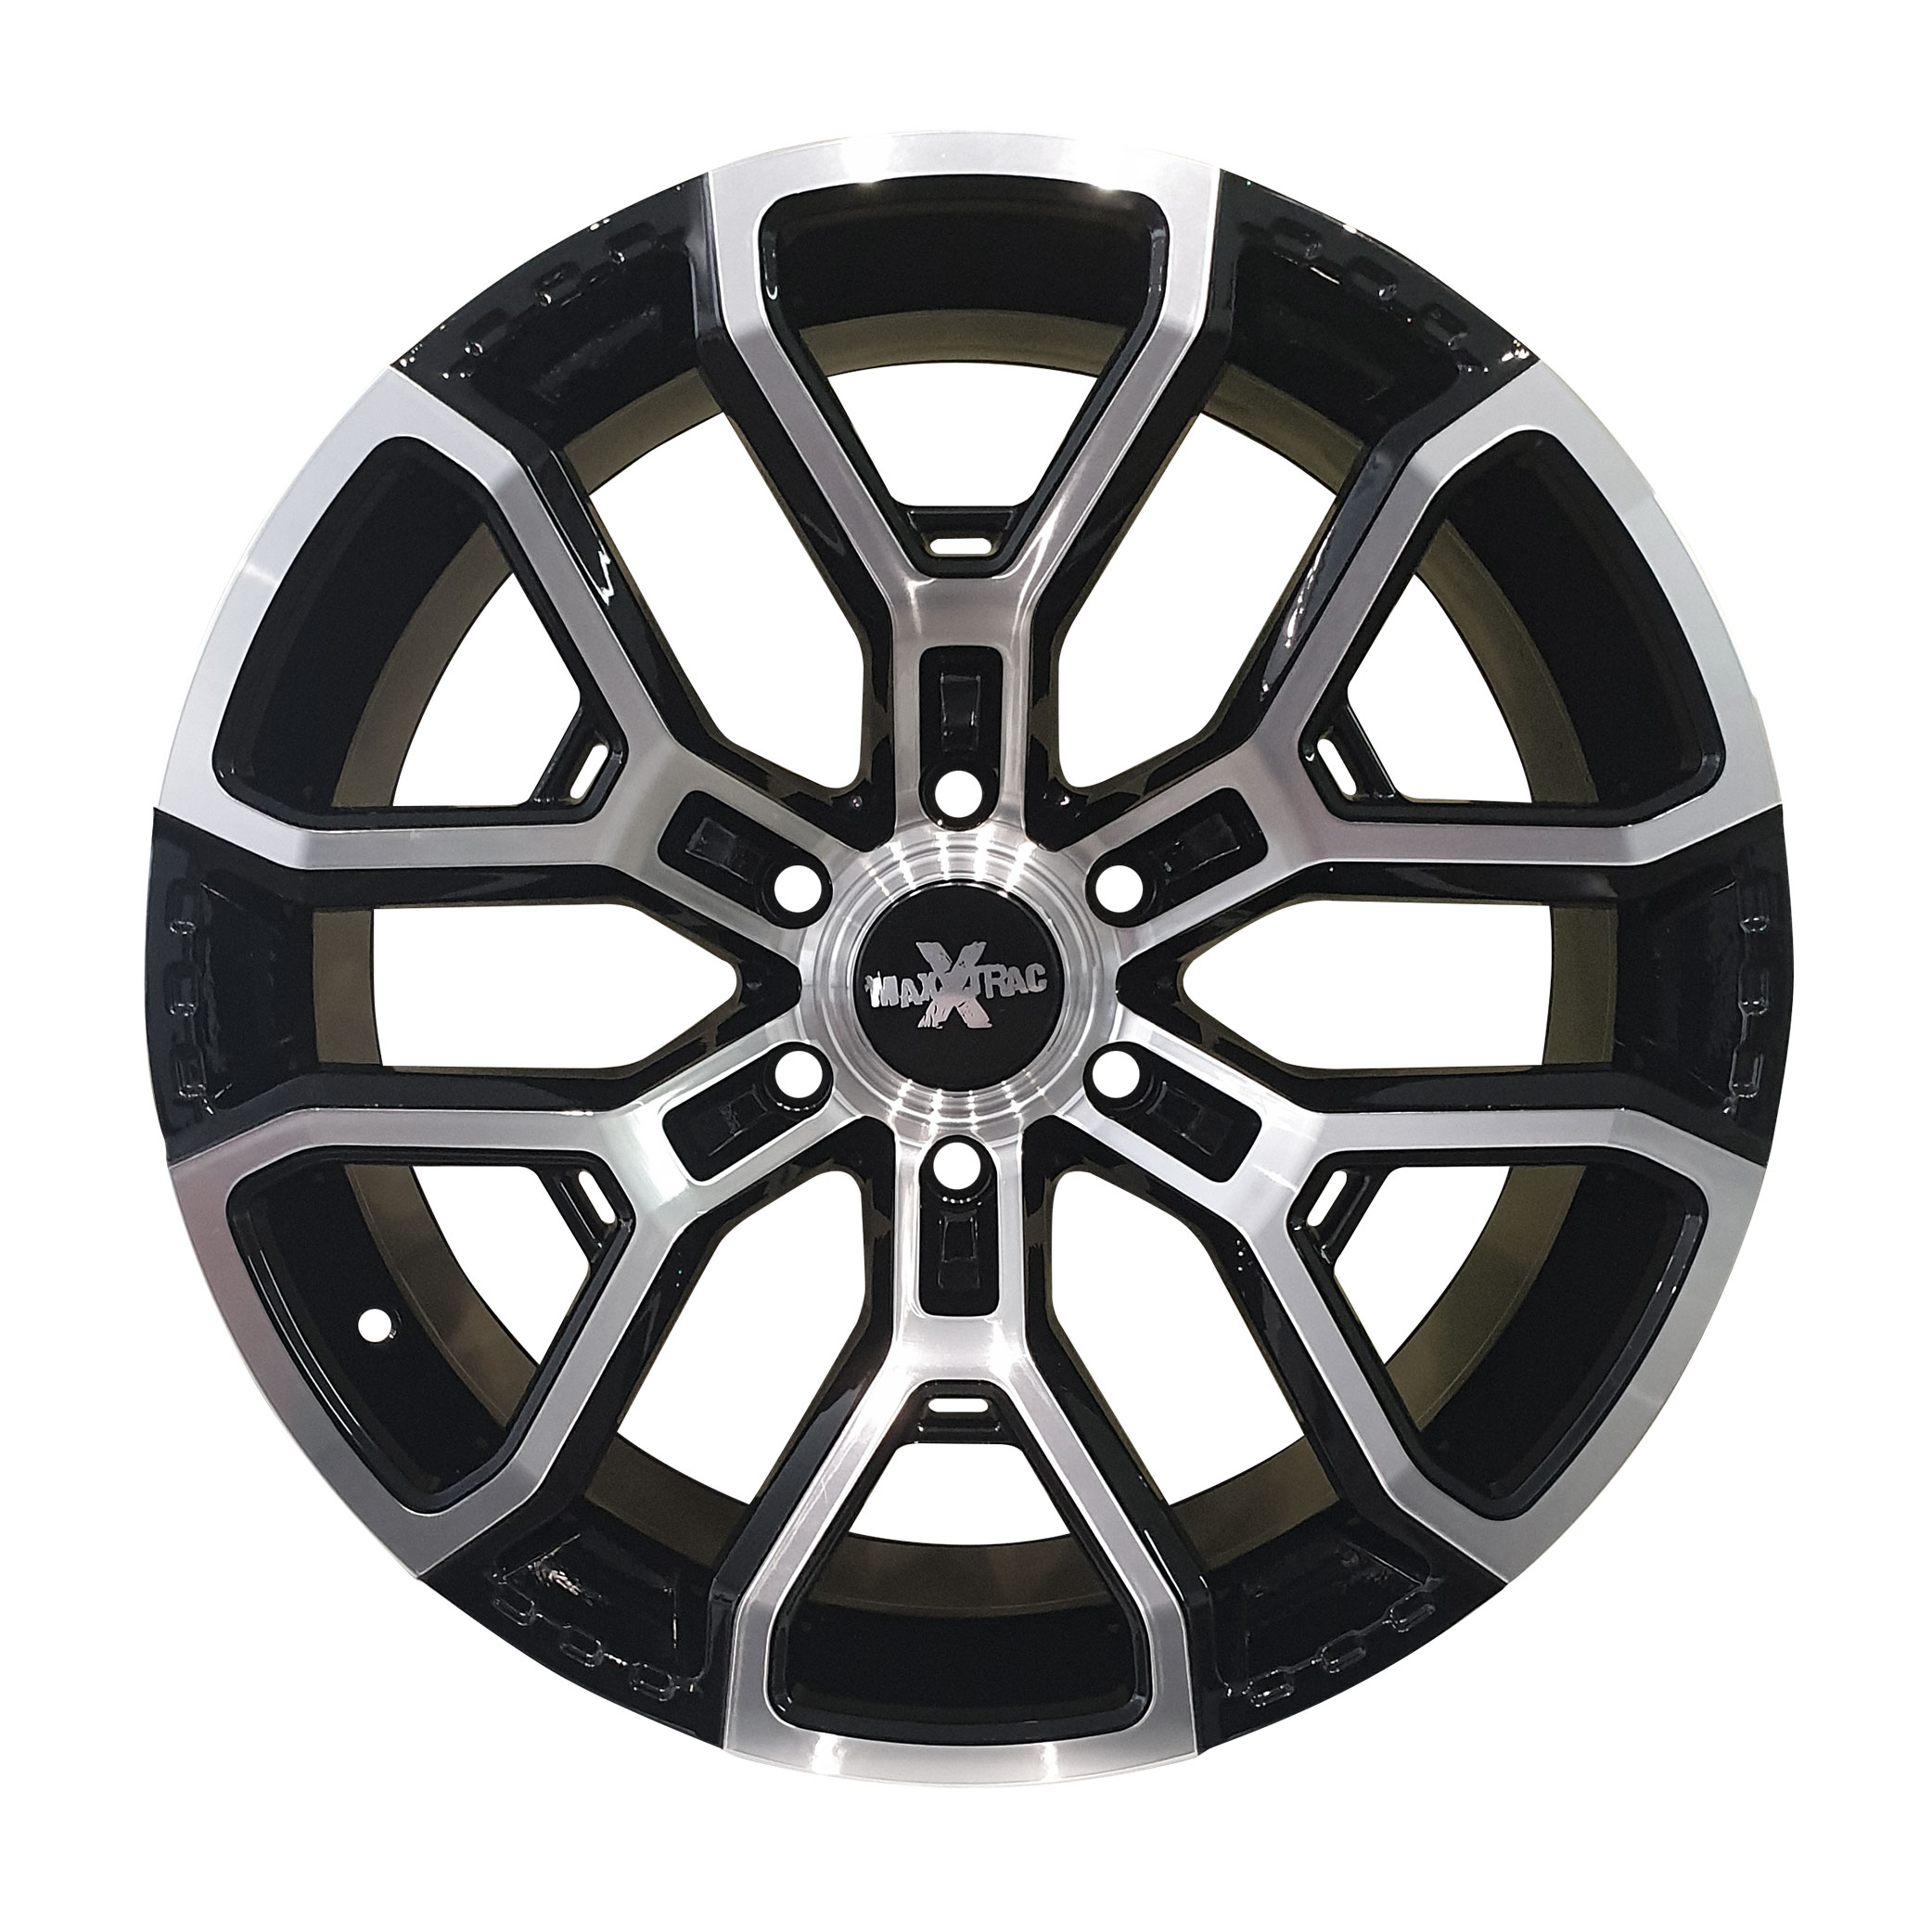 4x4 Alloy Wheels Warwick